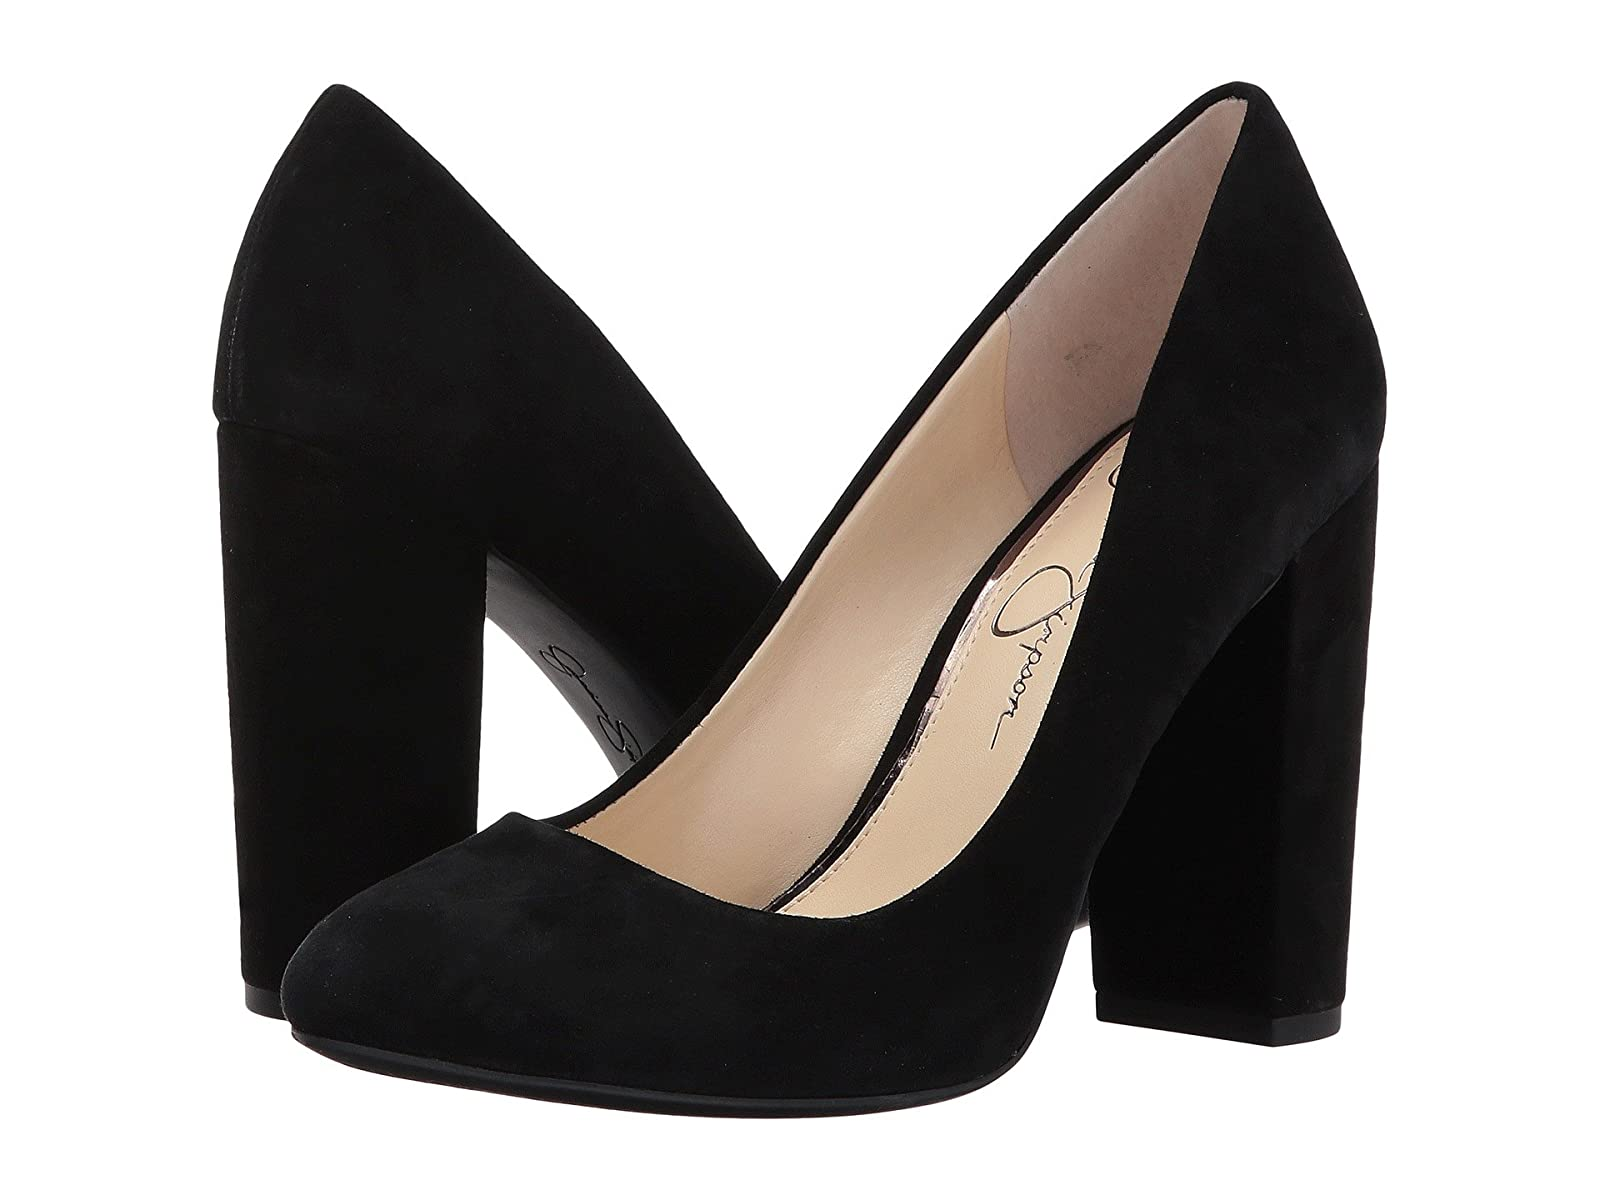 Jessica Simpson BelemoCheap and distinctive eye-catching shoes